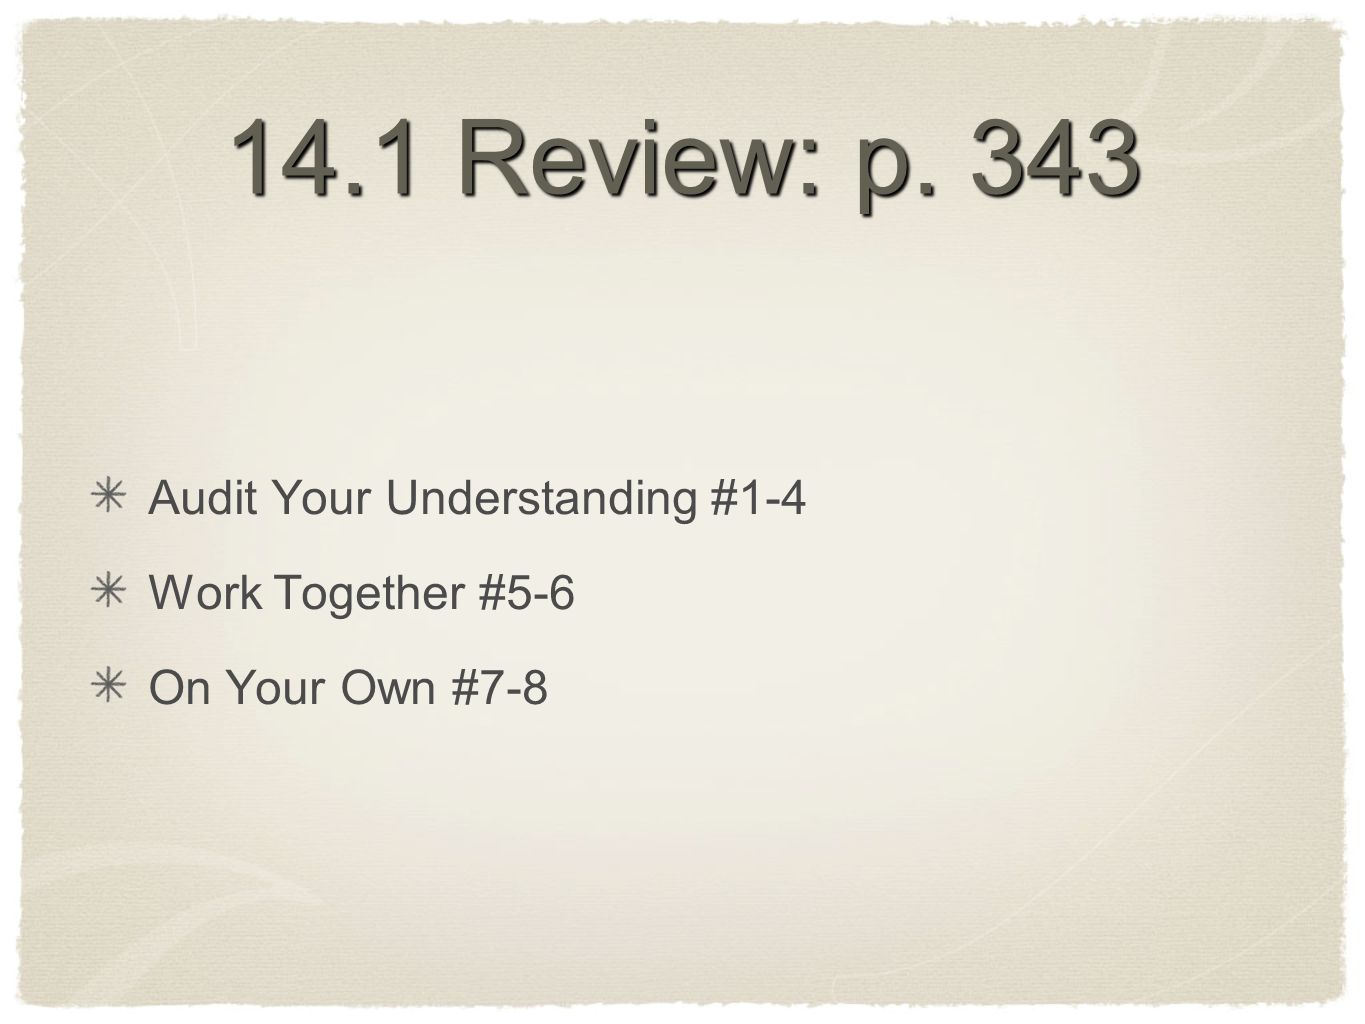 14.1 Review: p. 343 Audit Your Understanding #1-4 Work Together #5-6